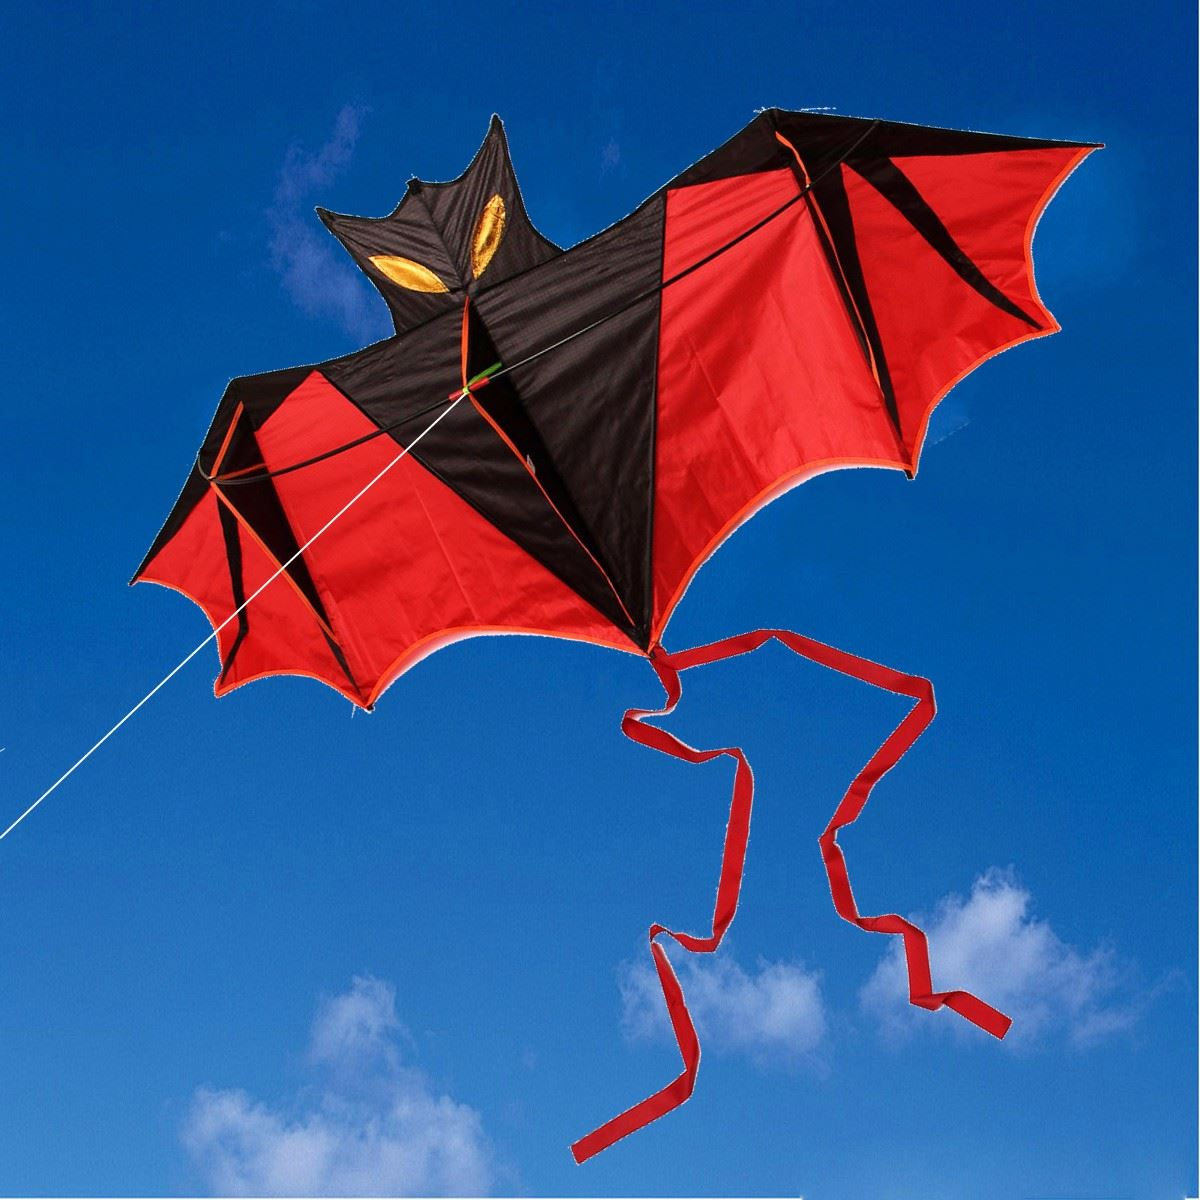 1.8m New Bat Windsock Kite Easy To Fly Outdoor fun Sports Children's toy With Handles Lines(China (Mainland))